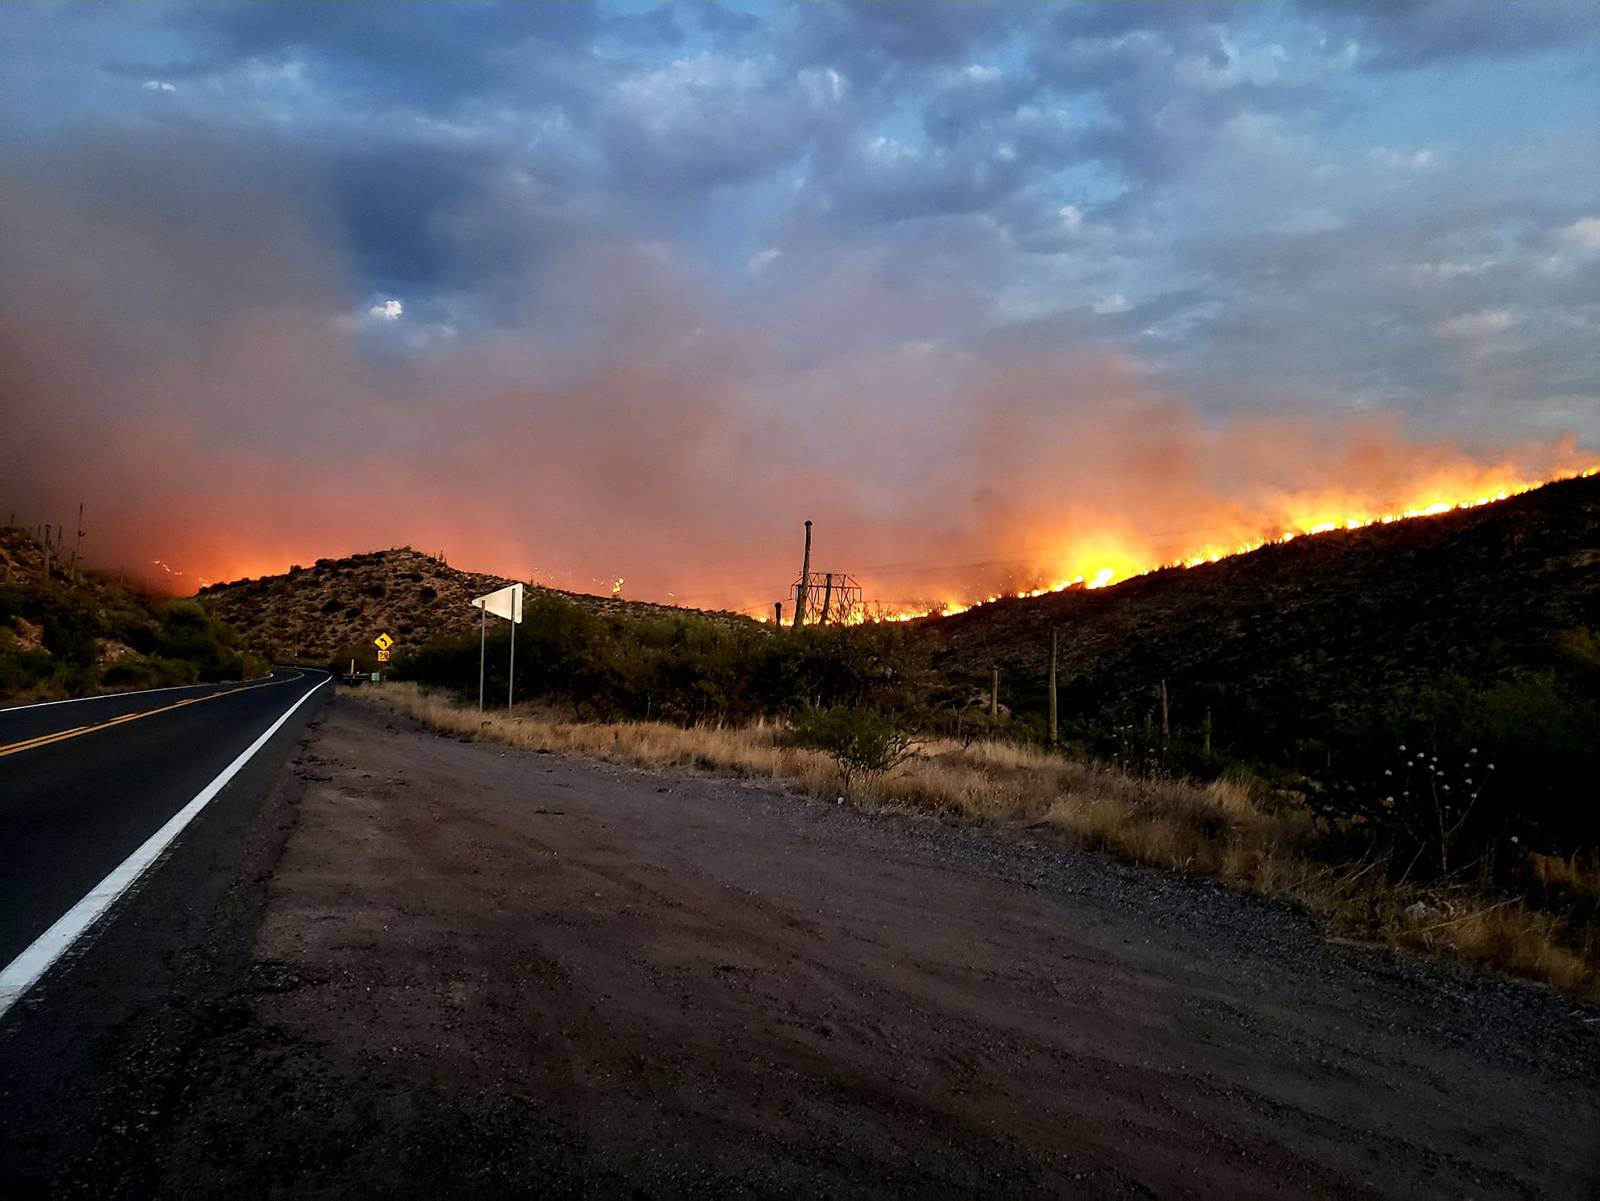 Fire restrictions are tightened on federally controlled land in Arizona due to ongoing wildfire danger